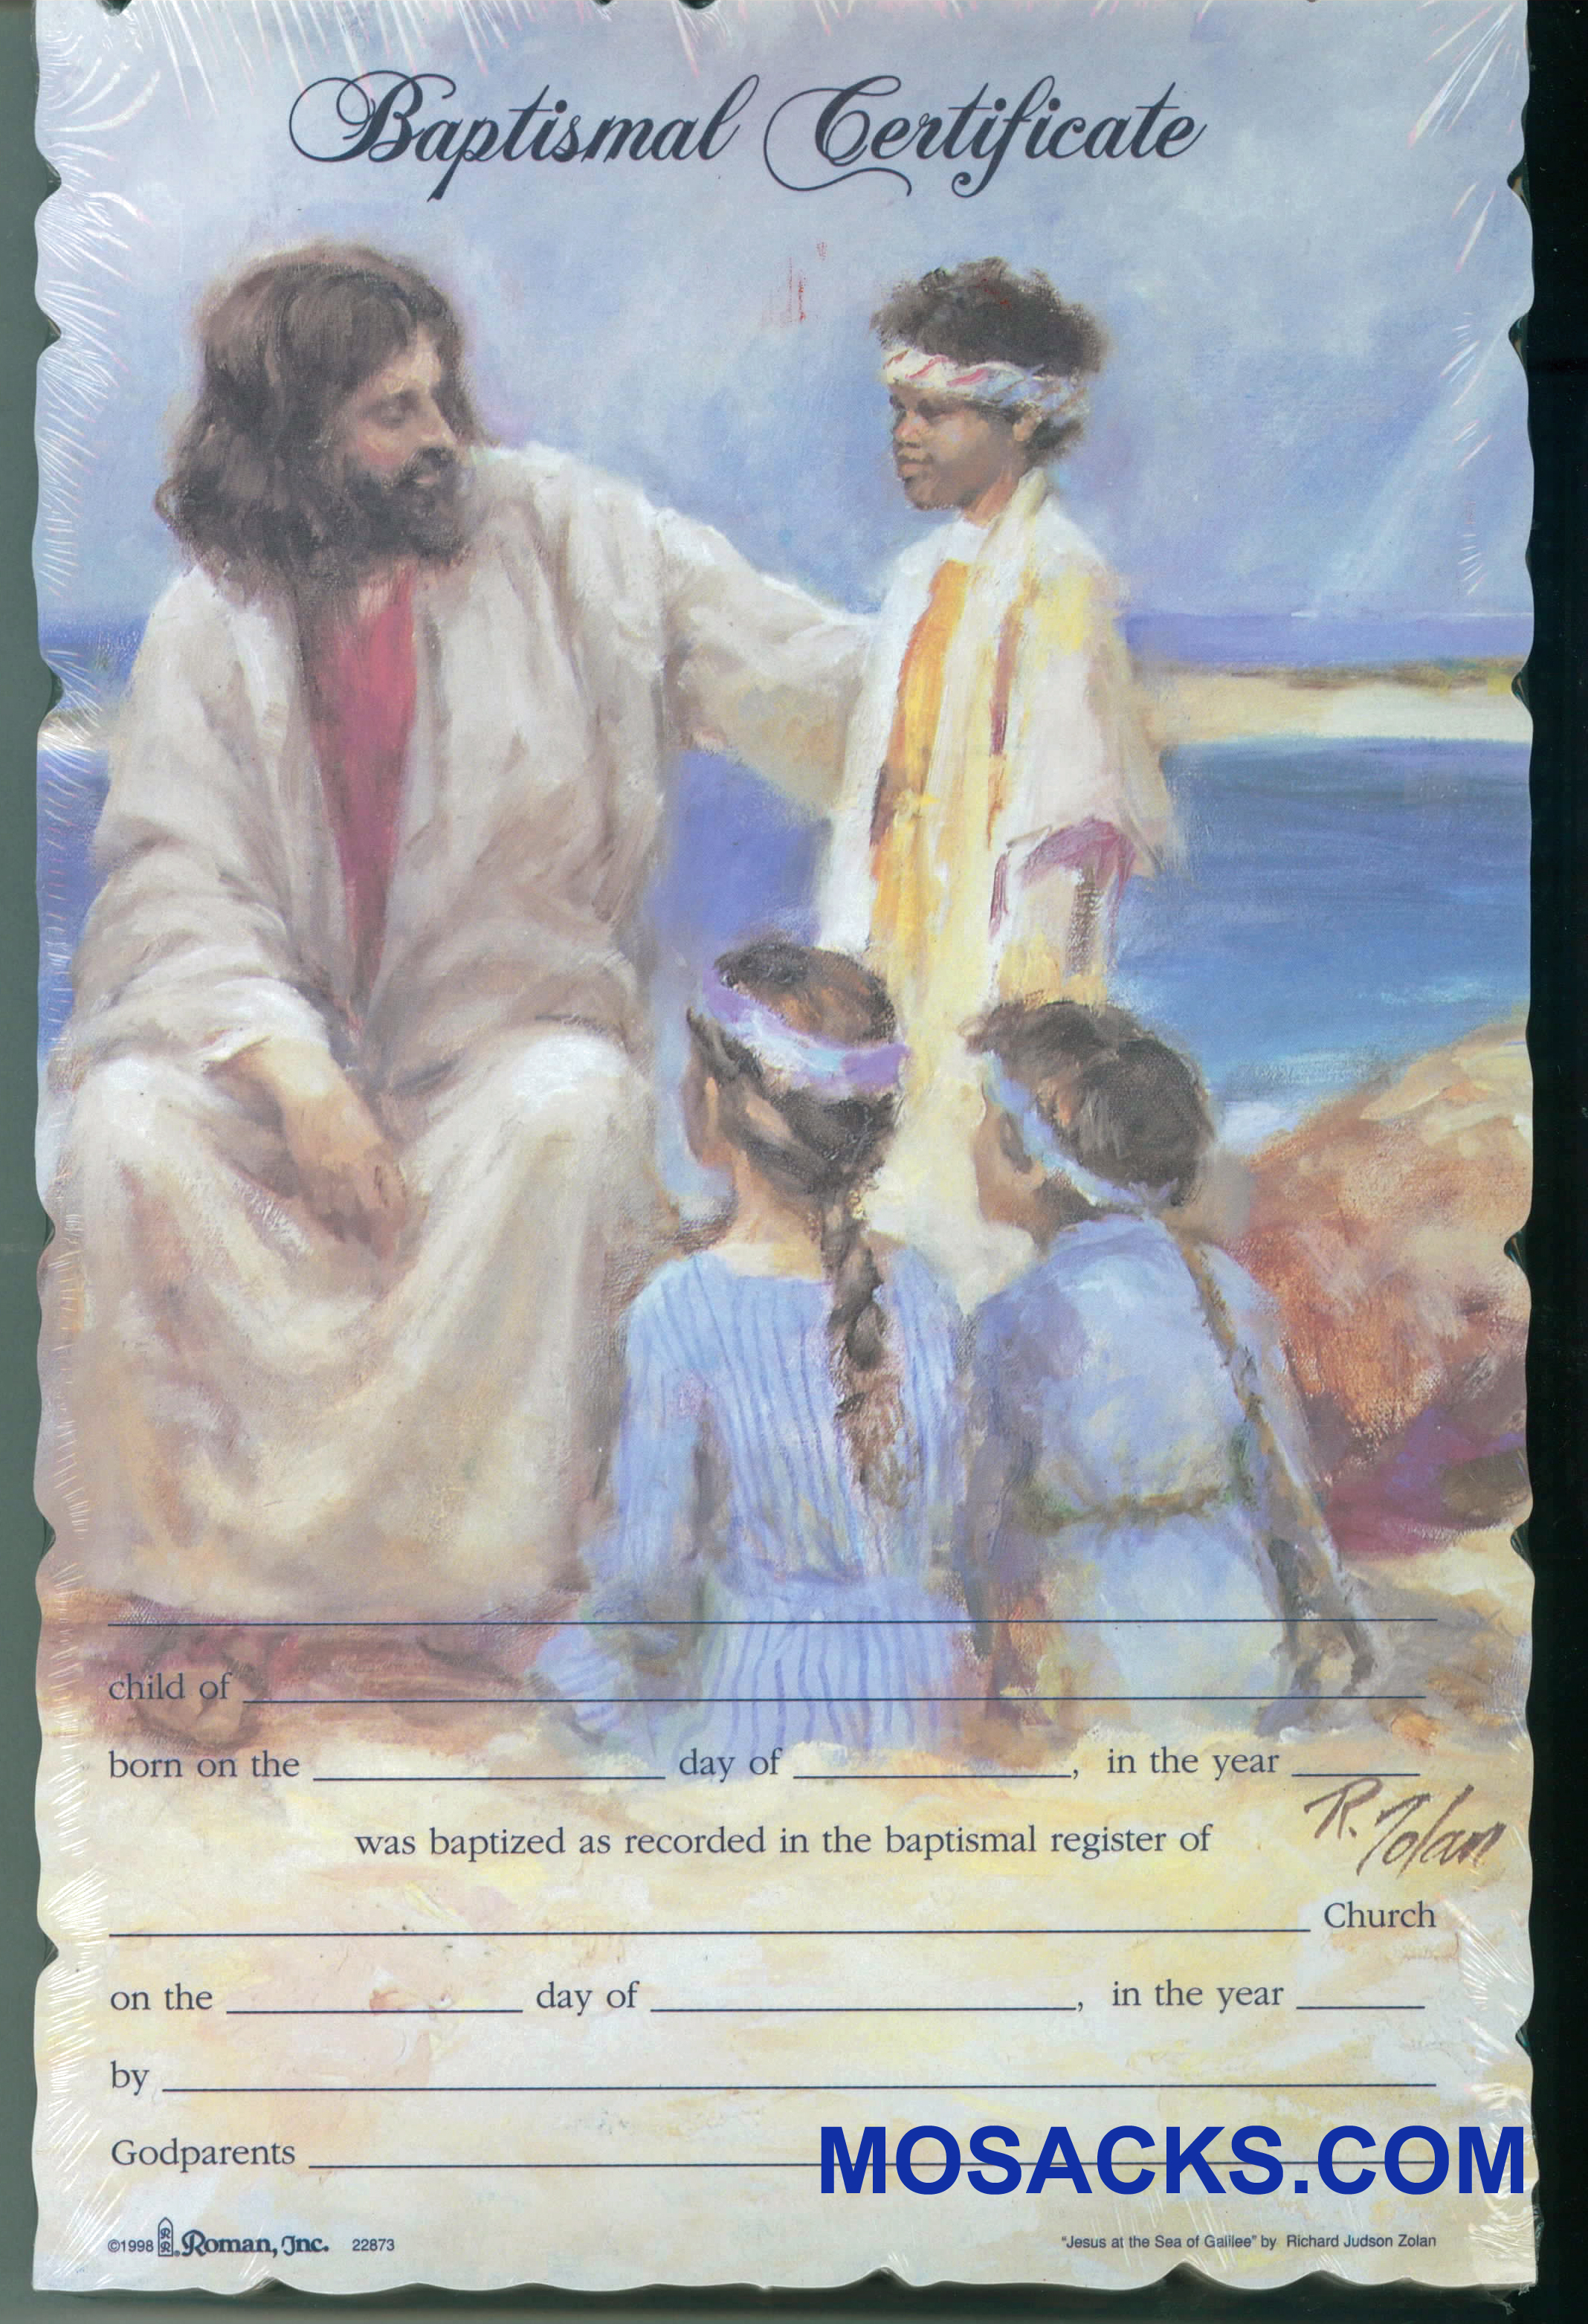 Baptismal Certificate Jesus With Children-22873